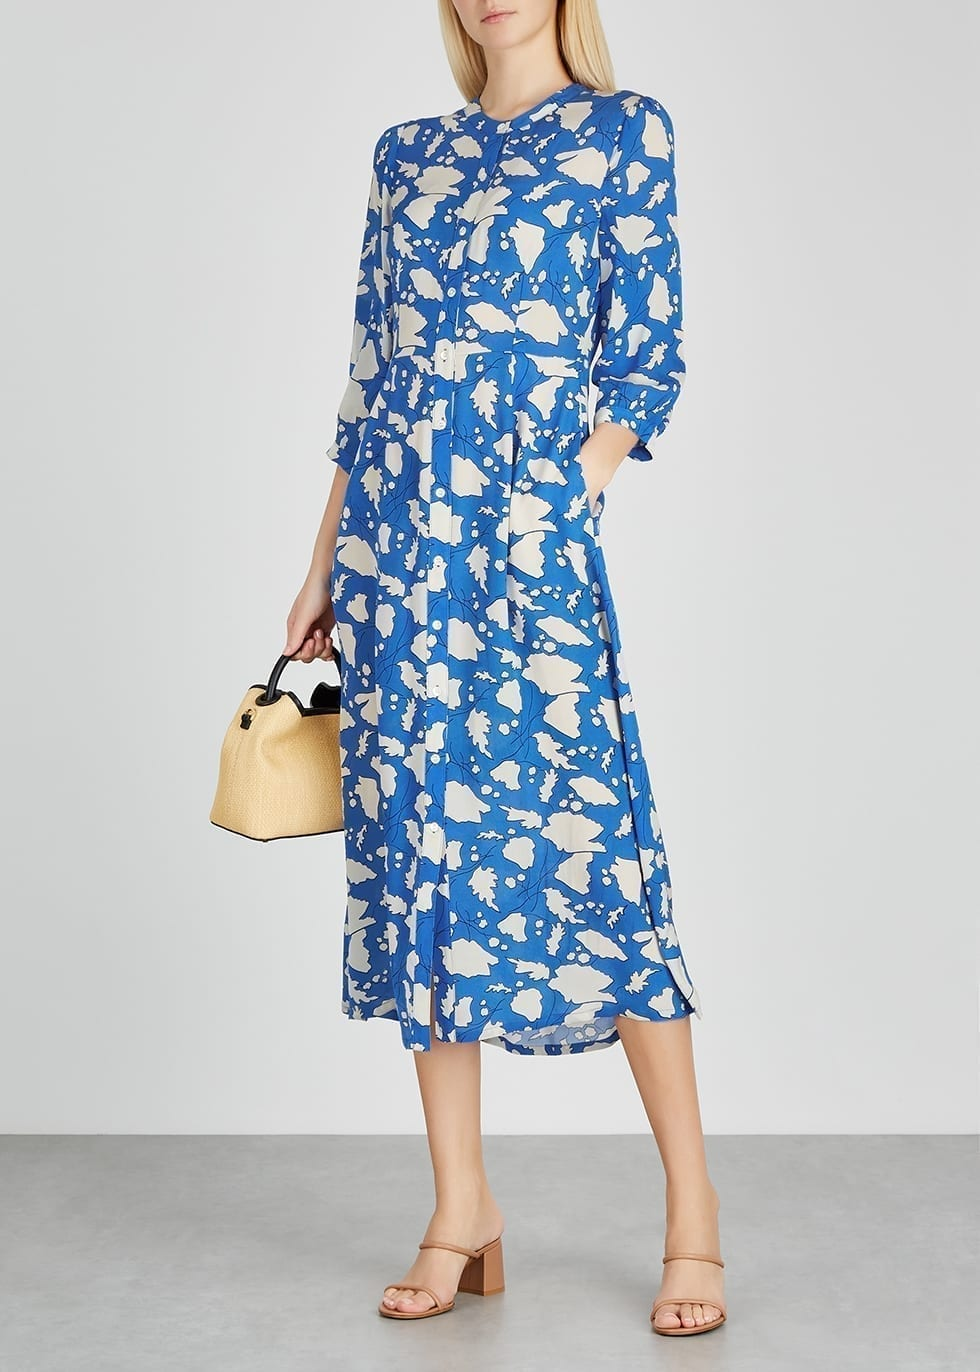 RAQUEL ALLEGRA Dreamer Blue Printed Silk Midi Dress